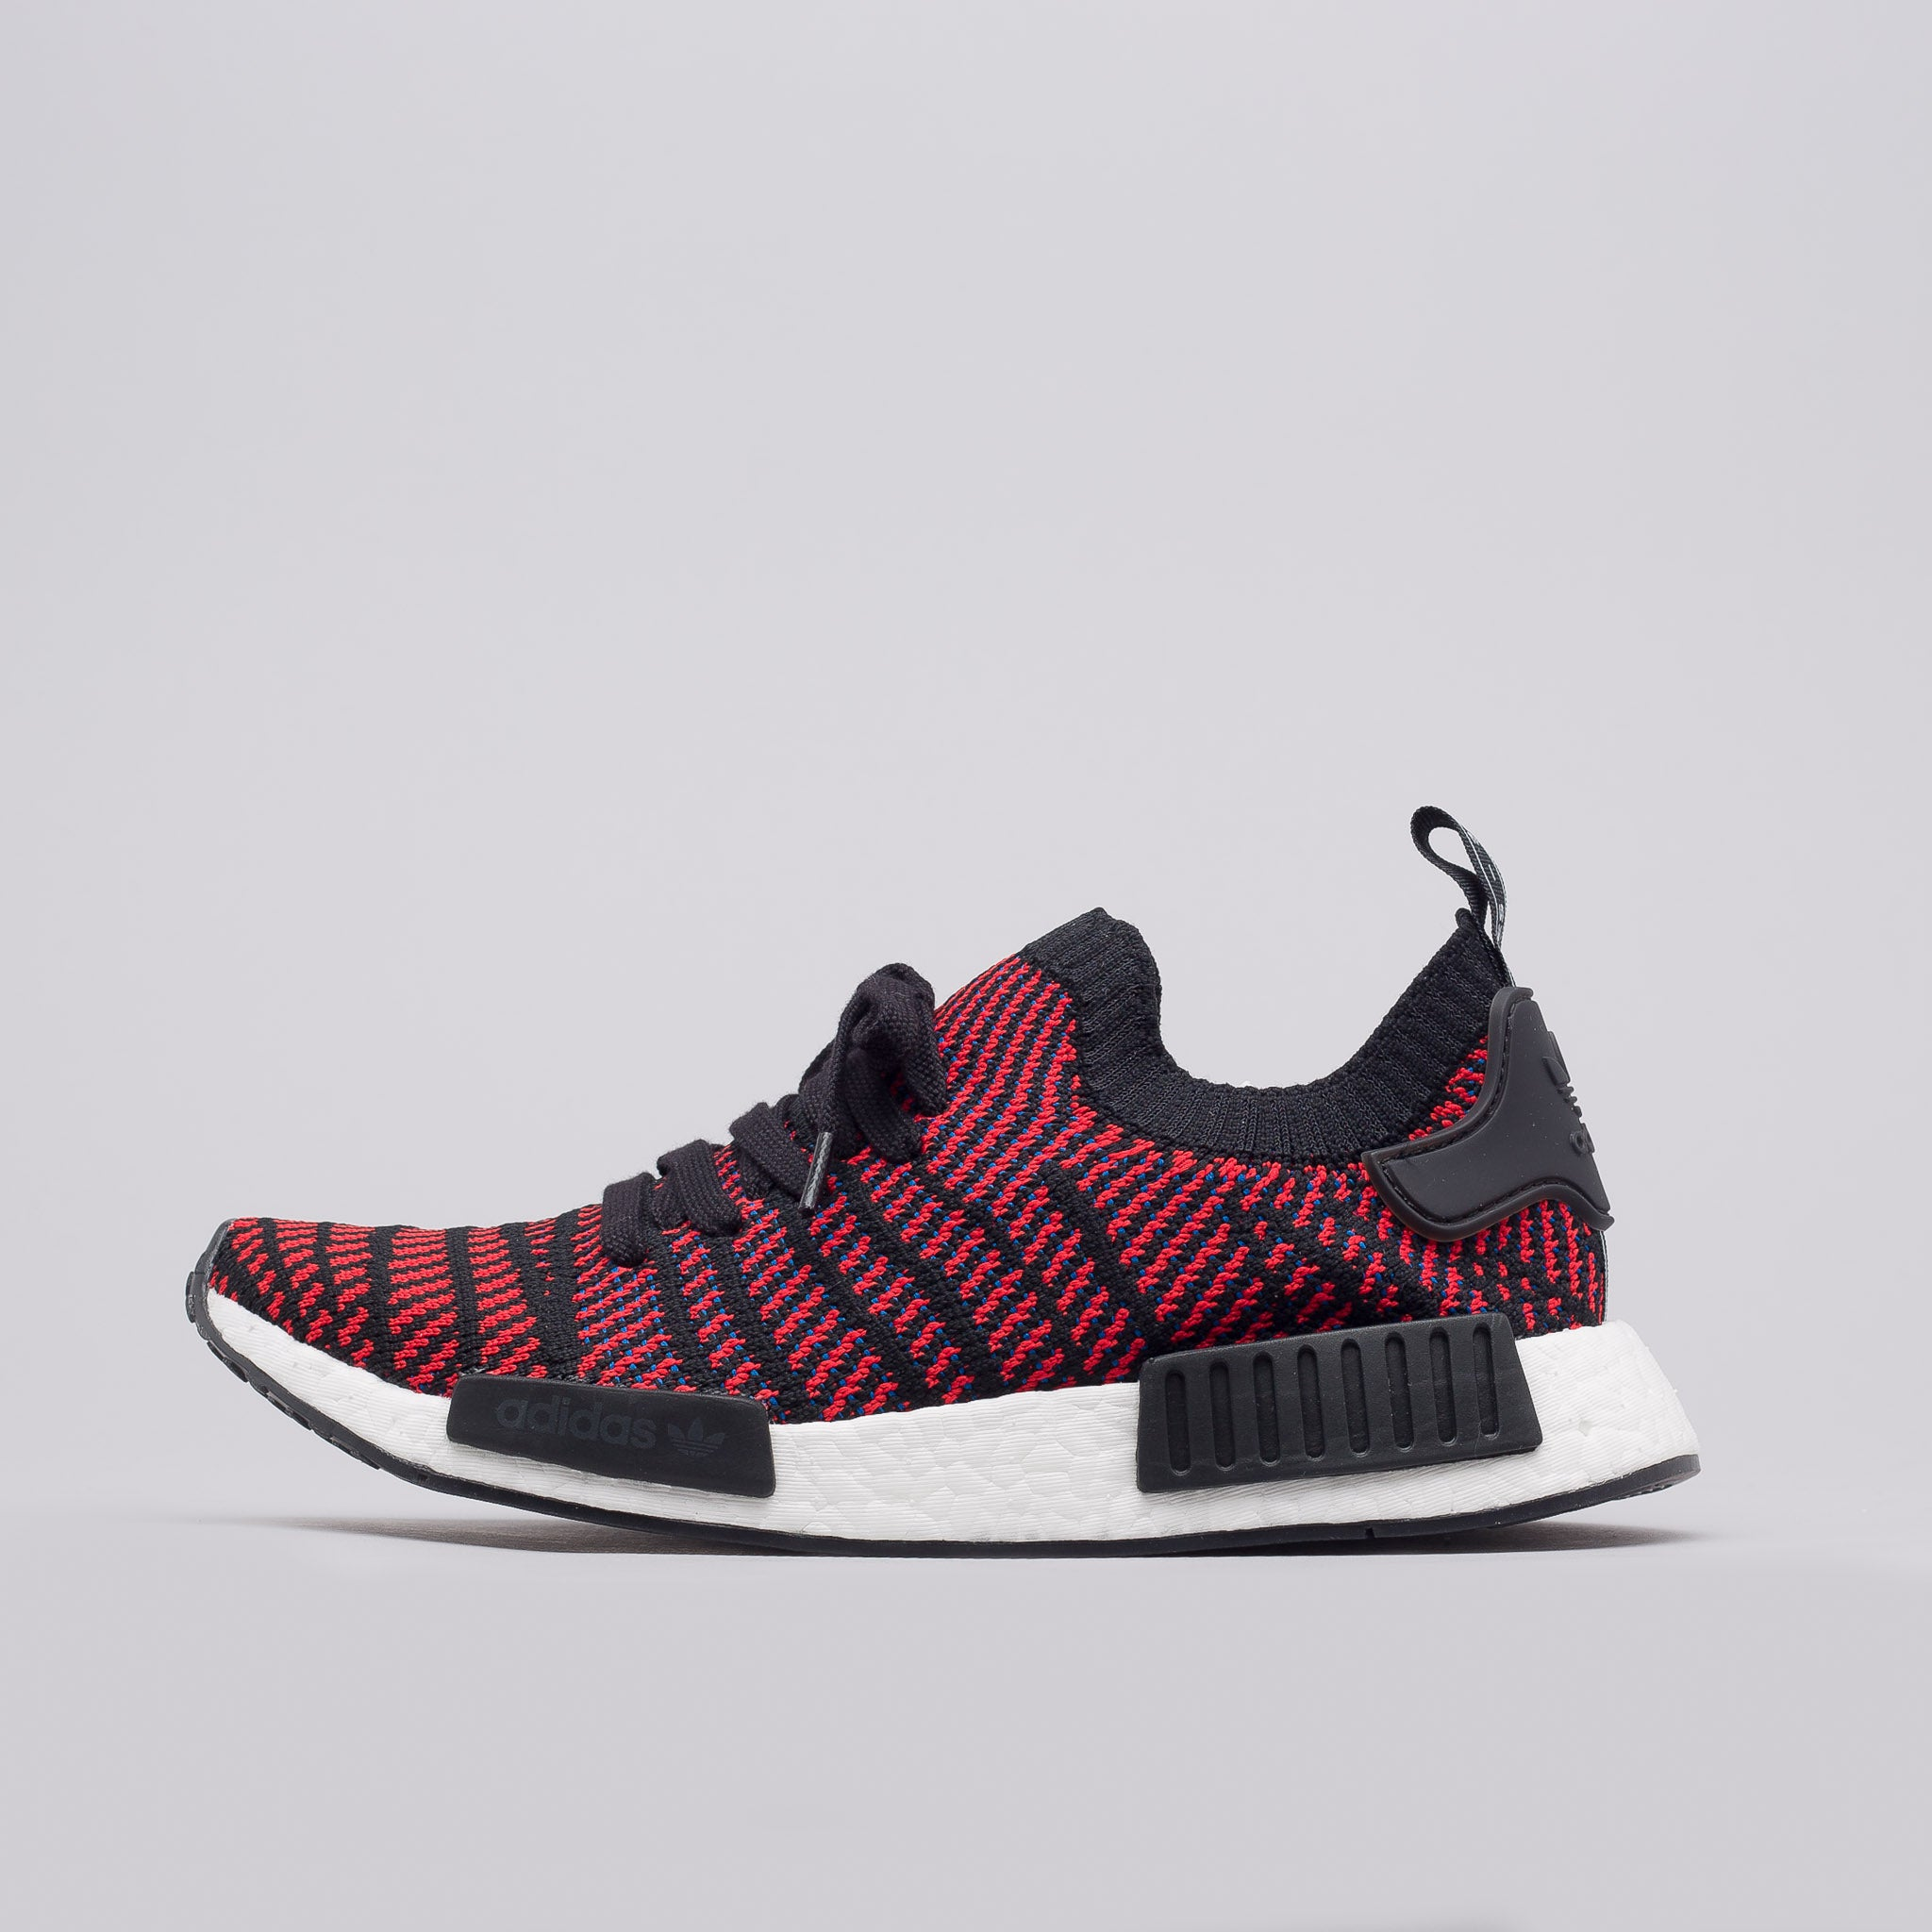 adidas's NMD_R1 Primeknit Is Releasing in